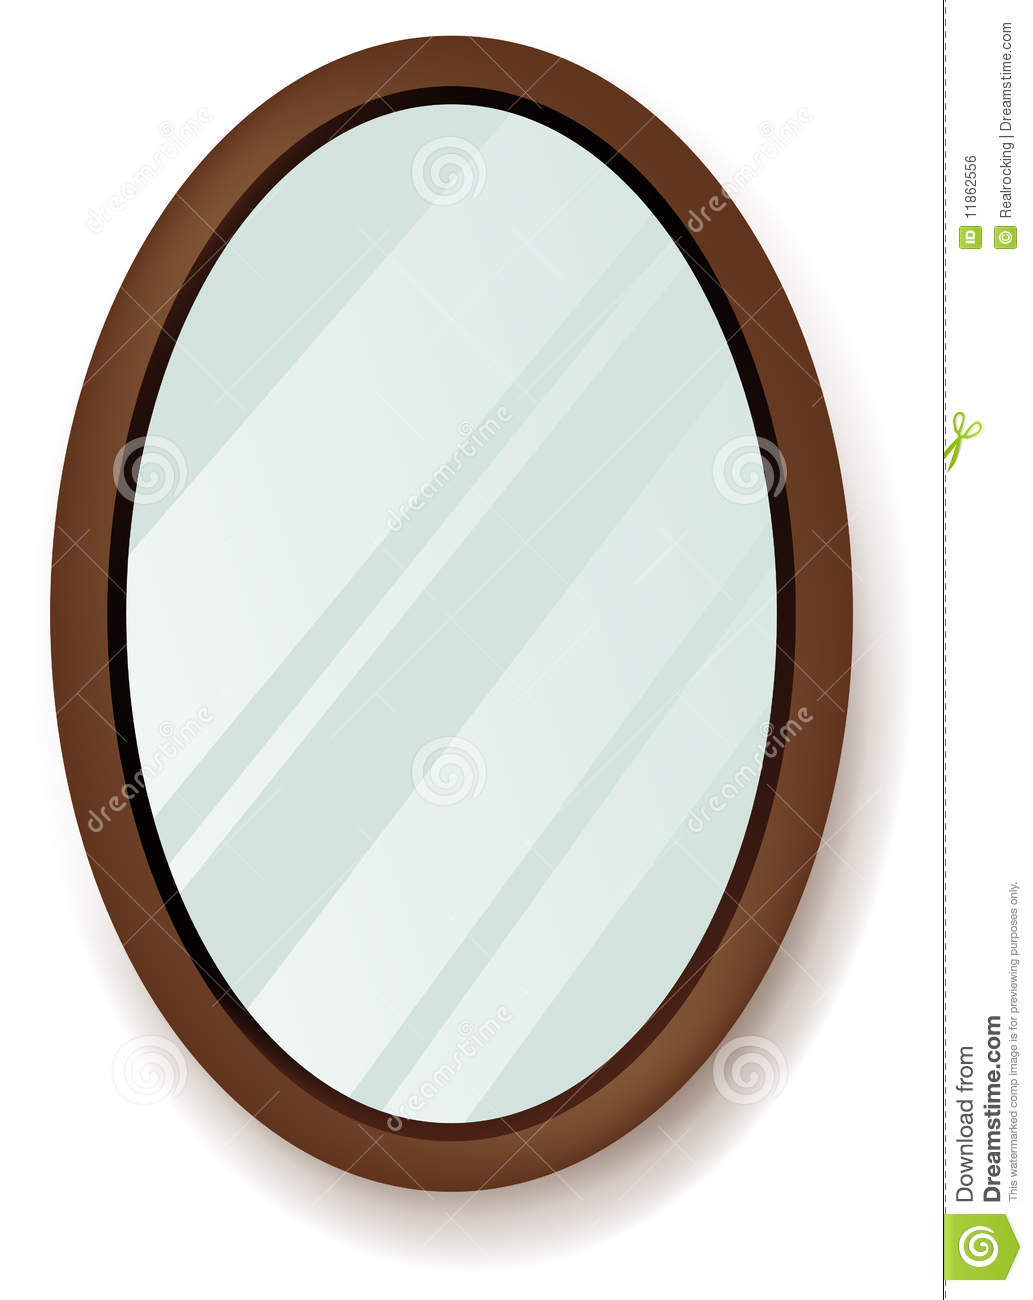 Standing Mirror Clipart Clipart Suggest